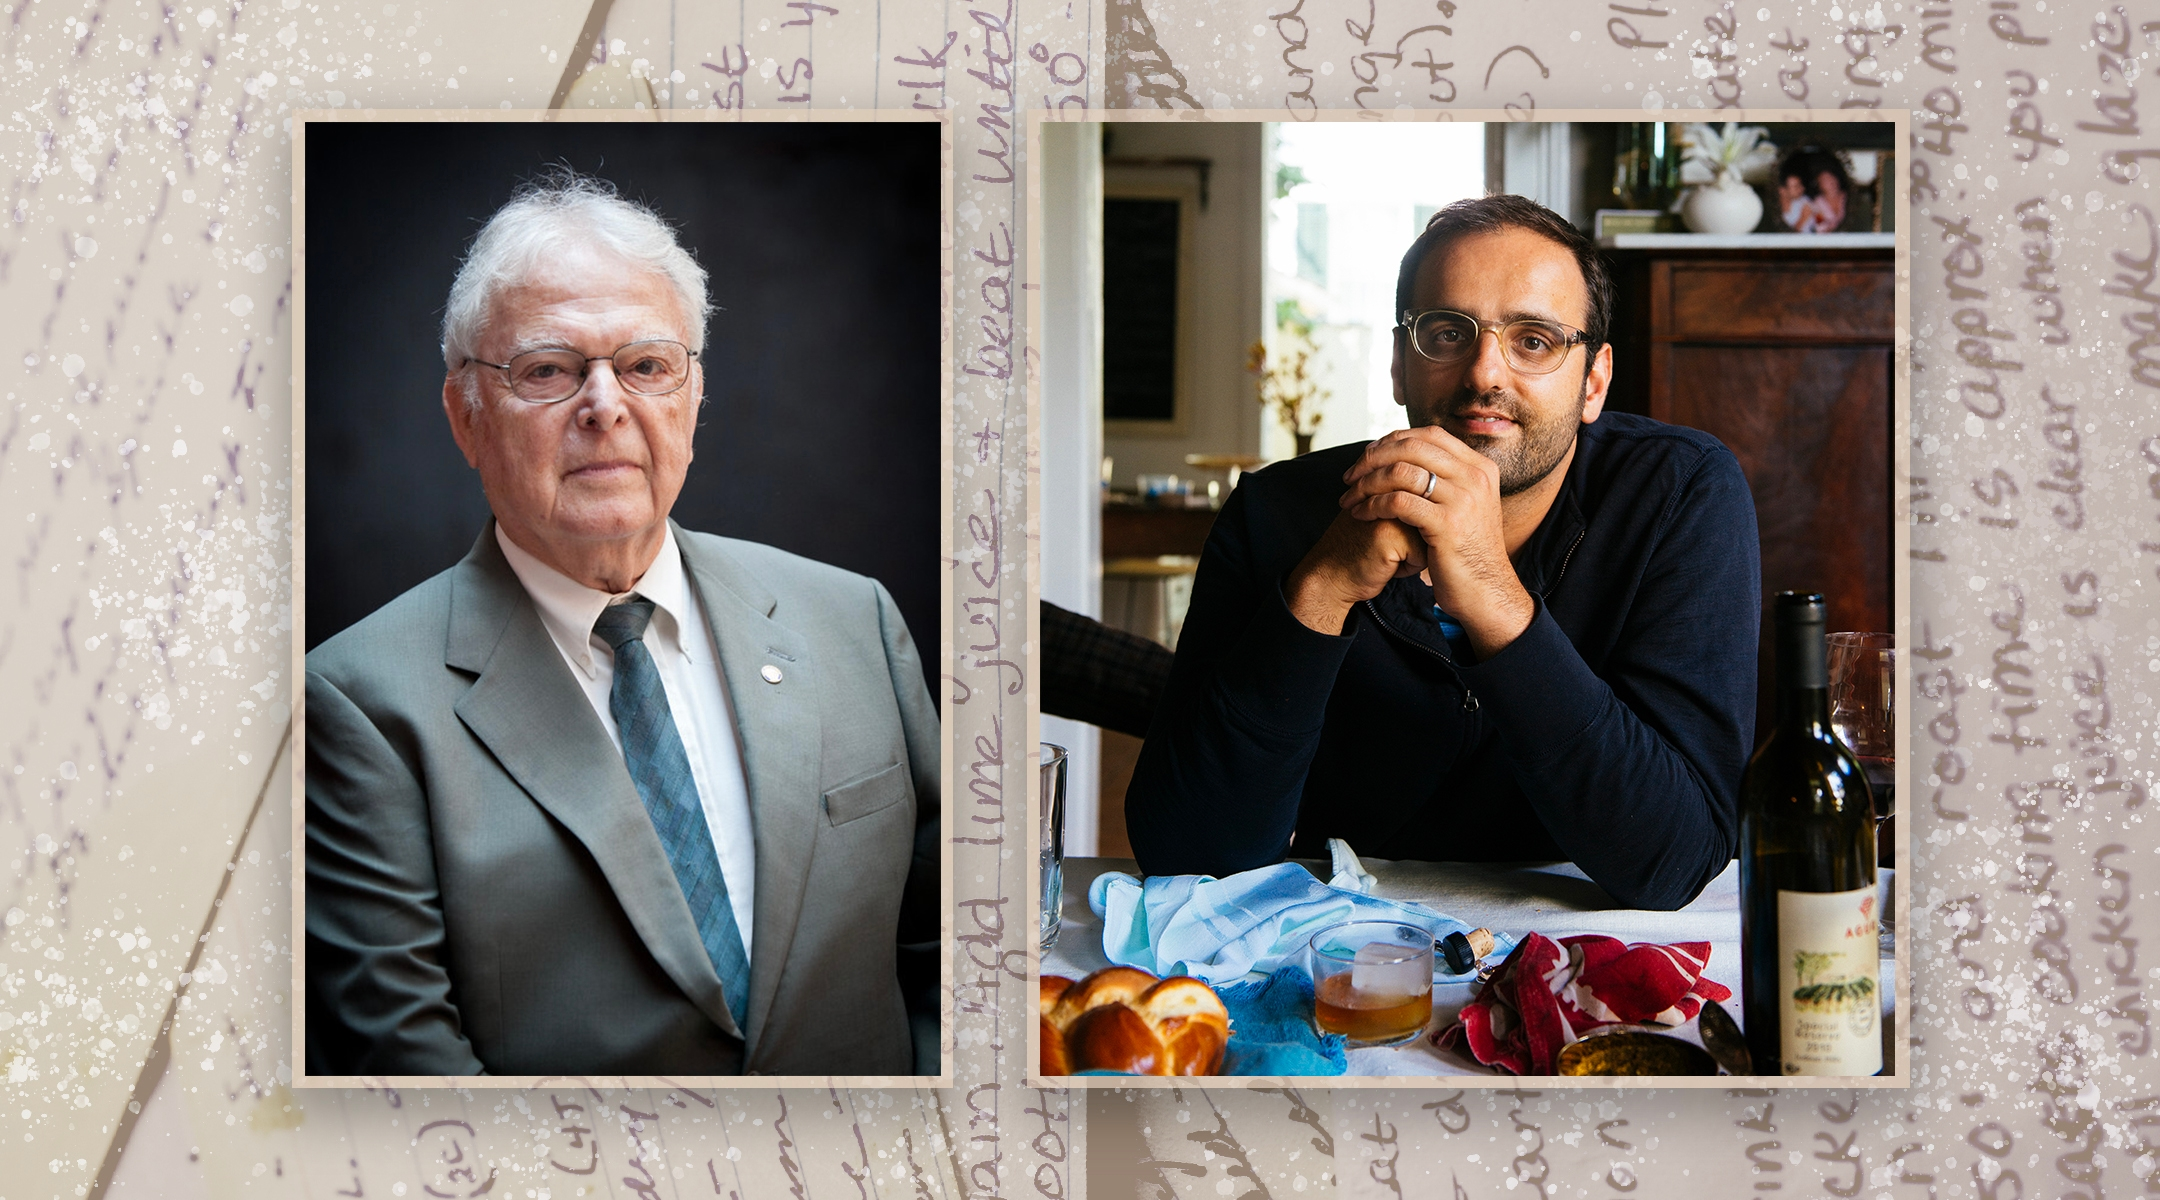 Star chef Alon Shaya helped a Holocaust survivor recreate recipes from his prewar youth